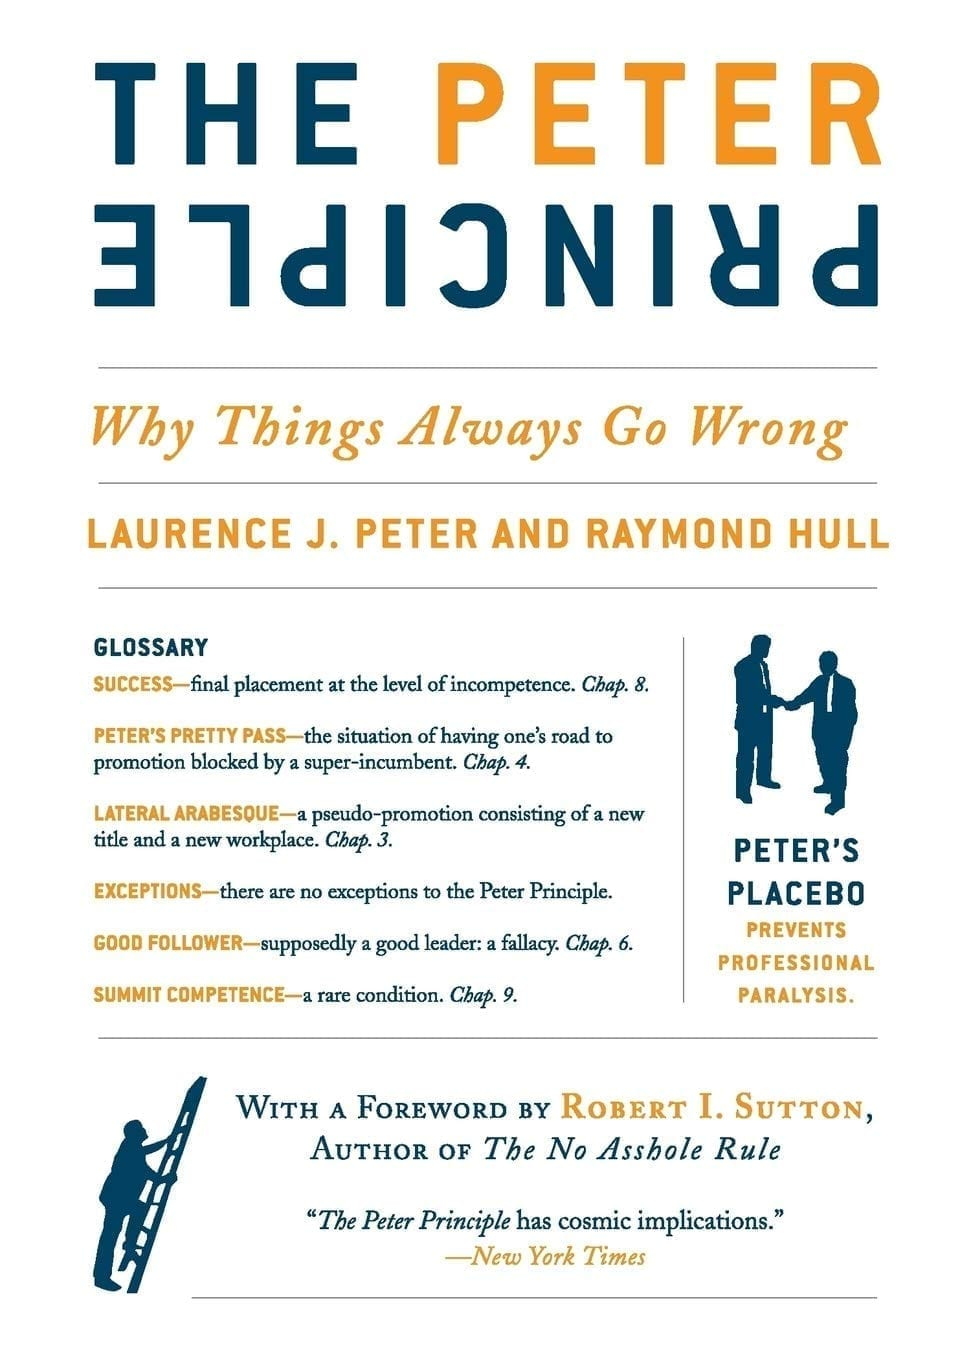 The Peter Principle Why Things Always Go Wrong by Laurence J Peter and Raymond Hull